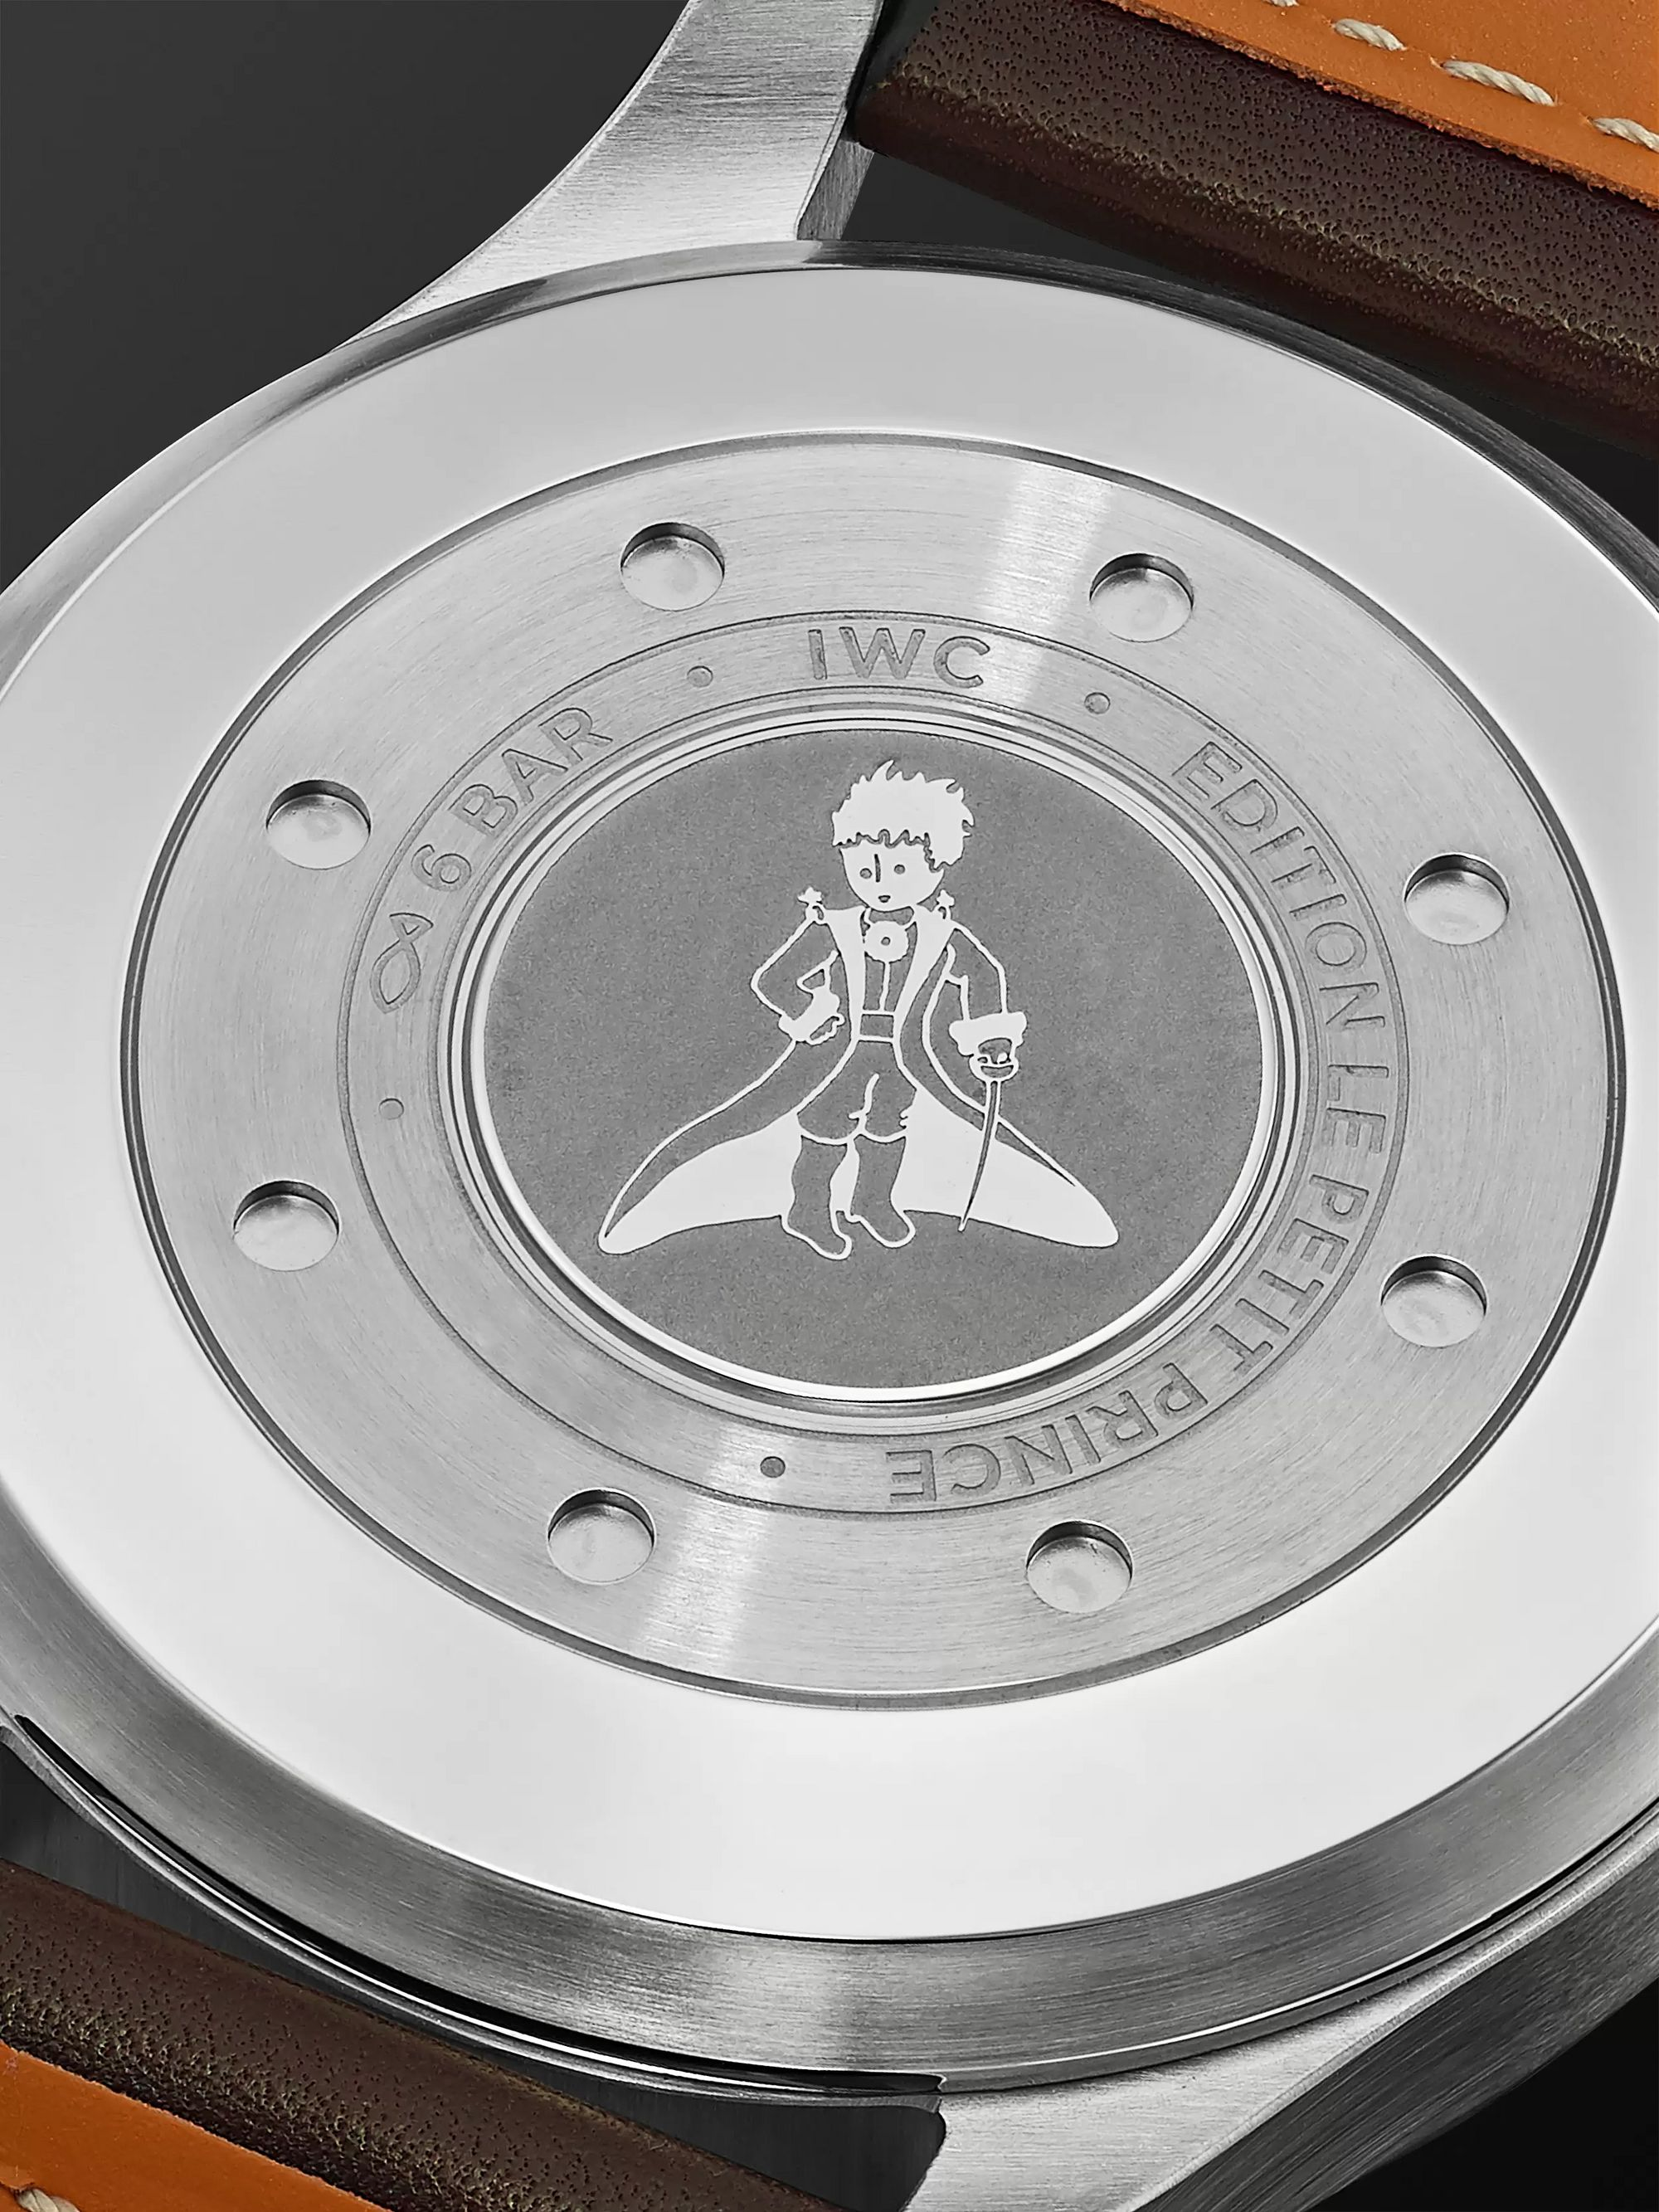 IWC SCHAFFHAUSEN Big Pilot's Le Petit Prince Automatic 46mm Stainless Steel and Leather Watch